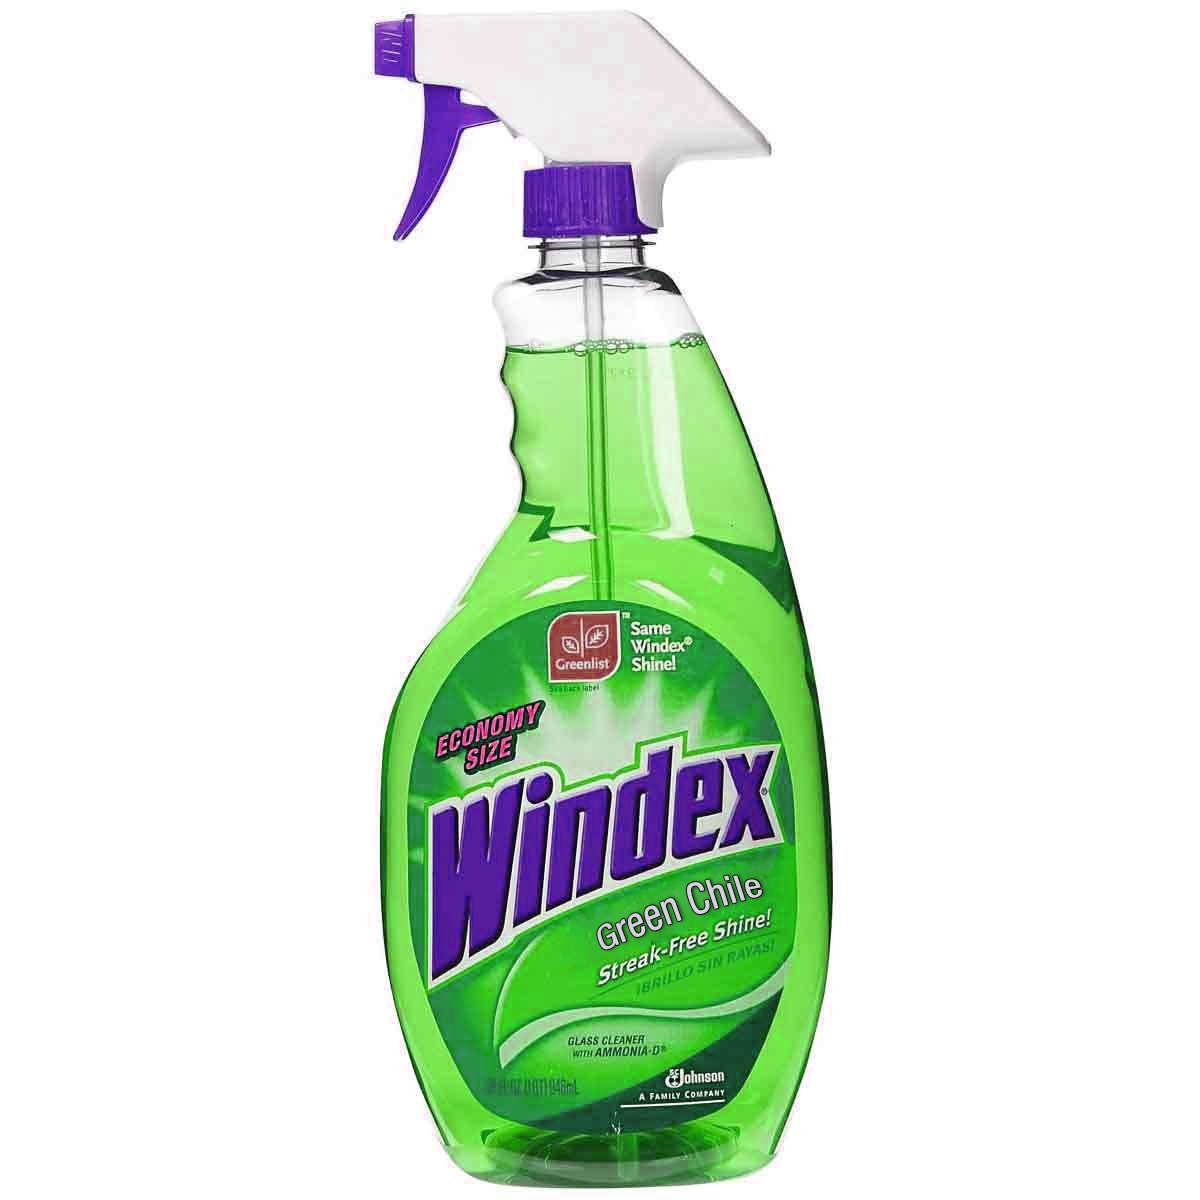 Humor for your day! - Green Chile Windex - Sharing Santa ...